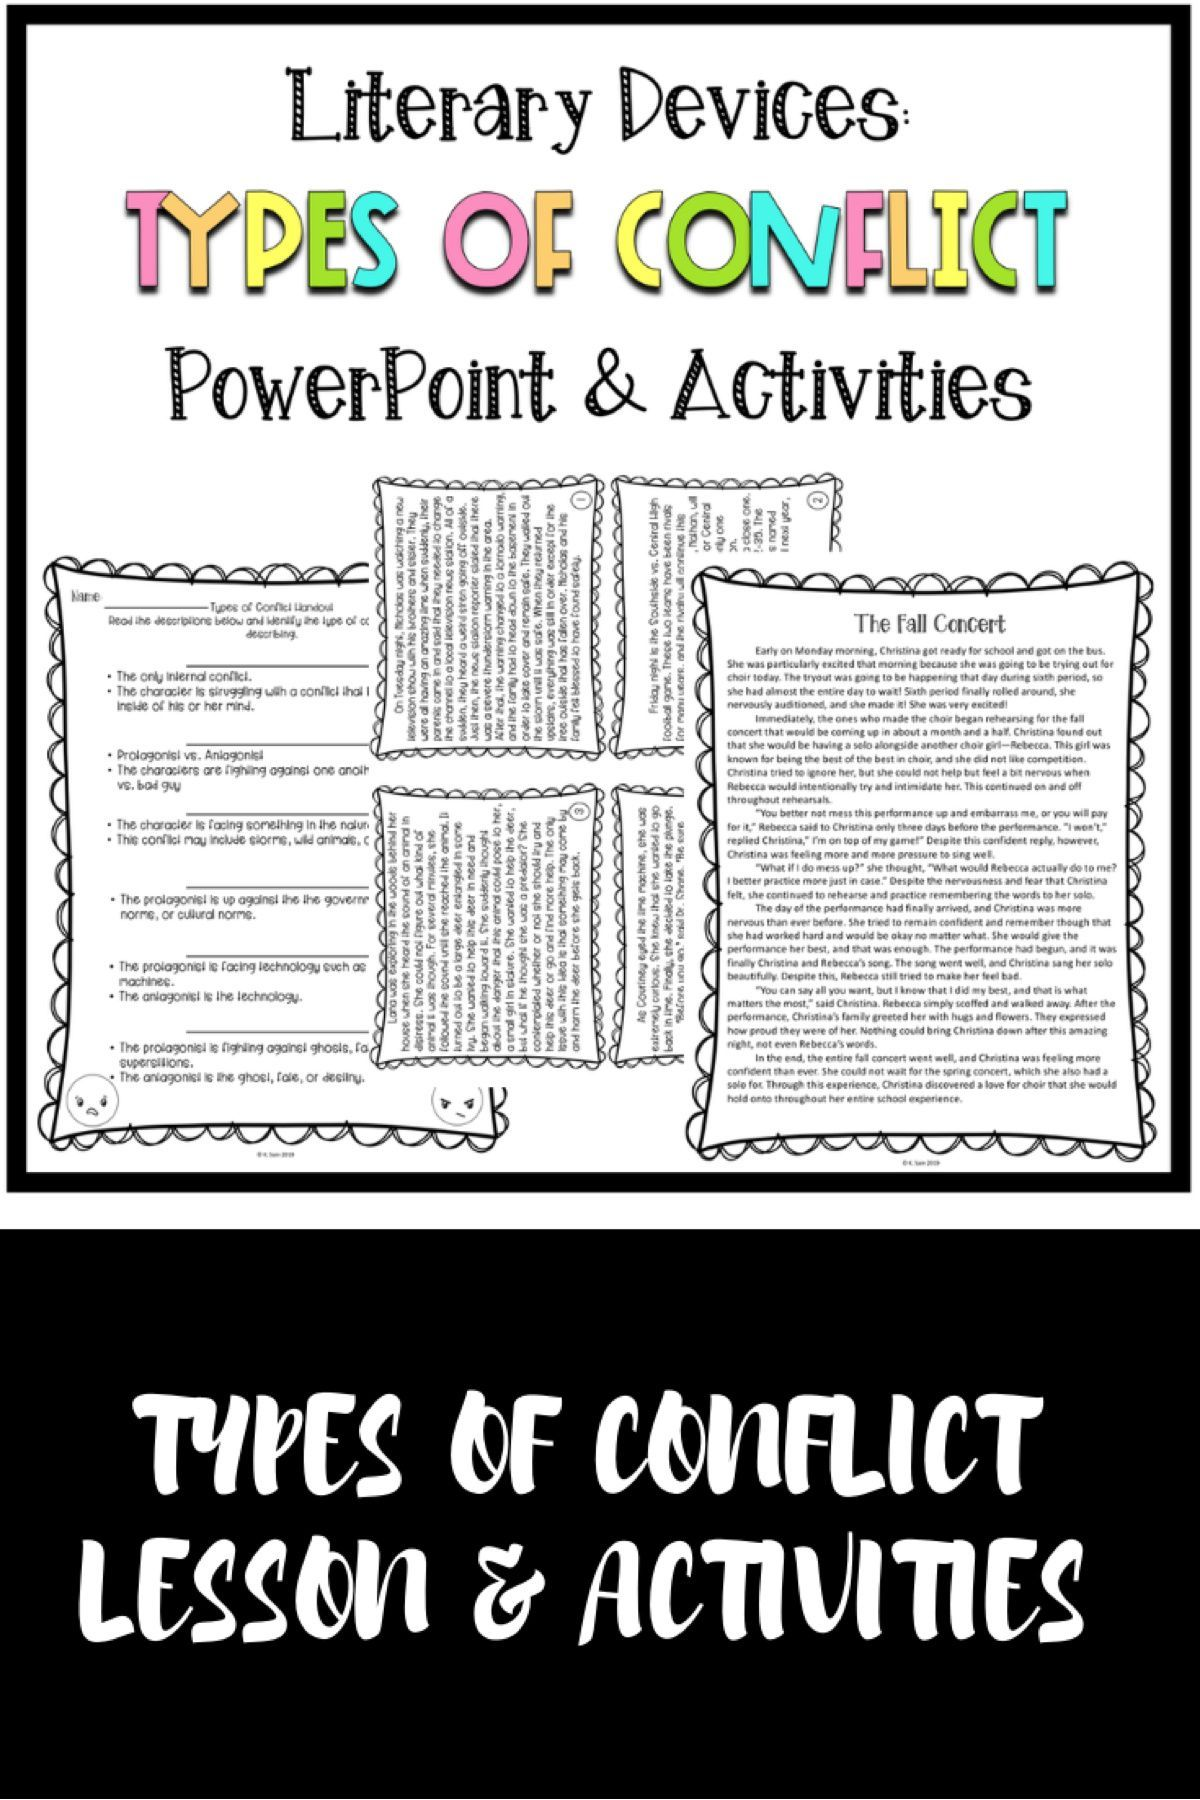 Types Of Conflict Literary Devices Lesson And Activities